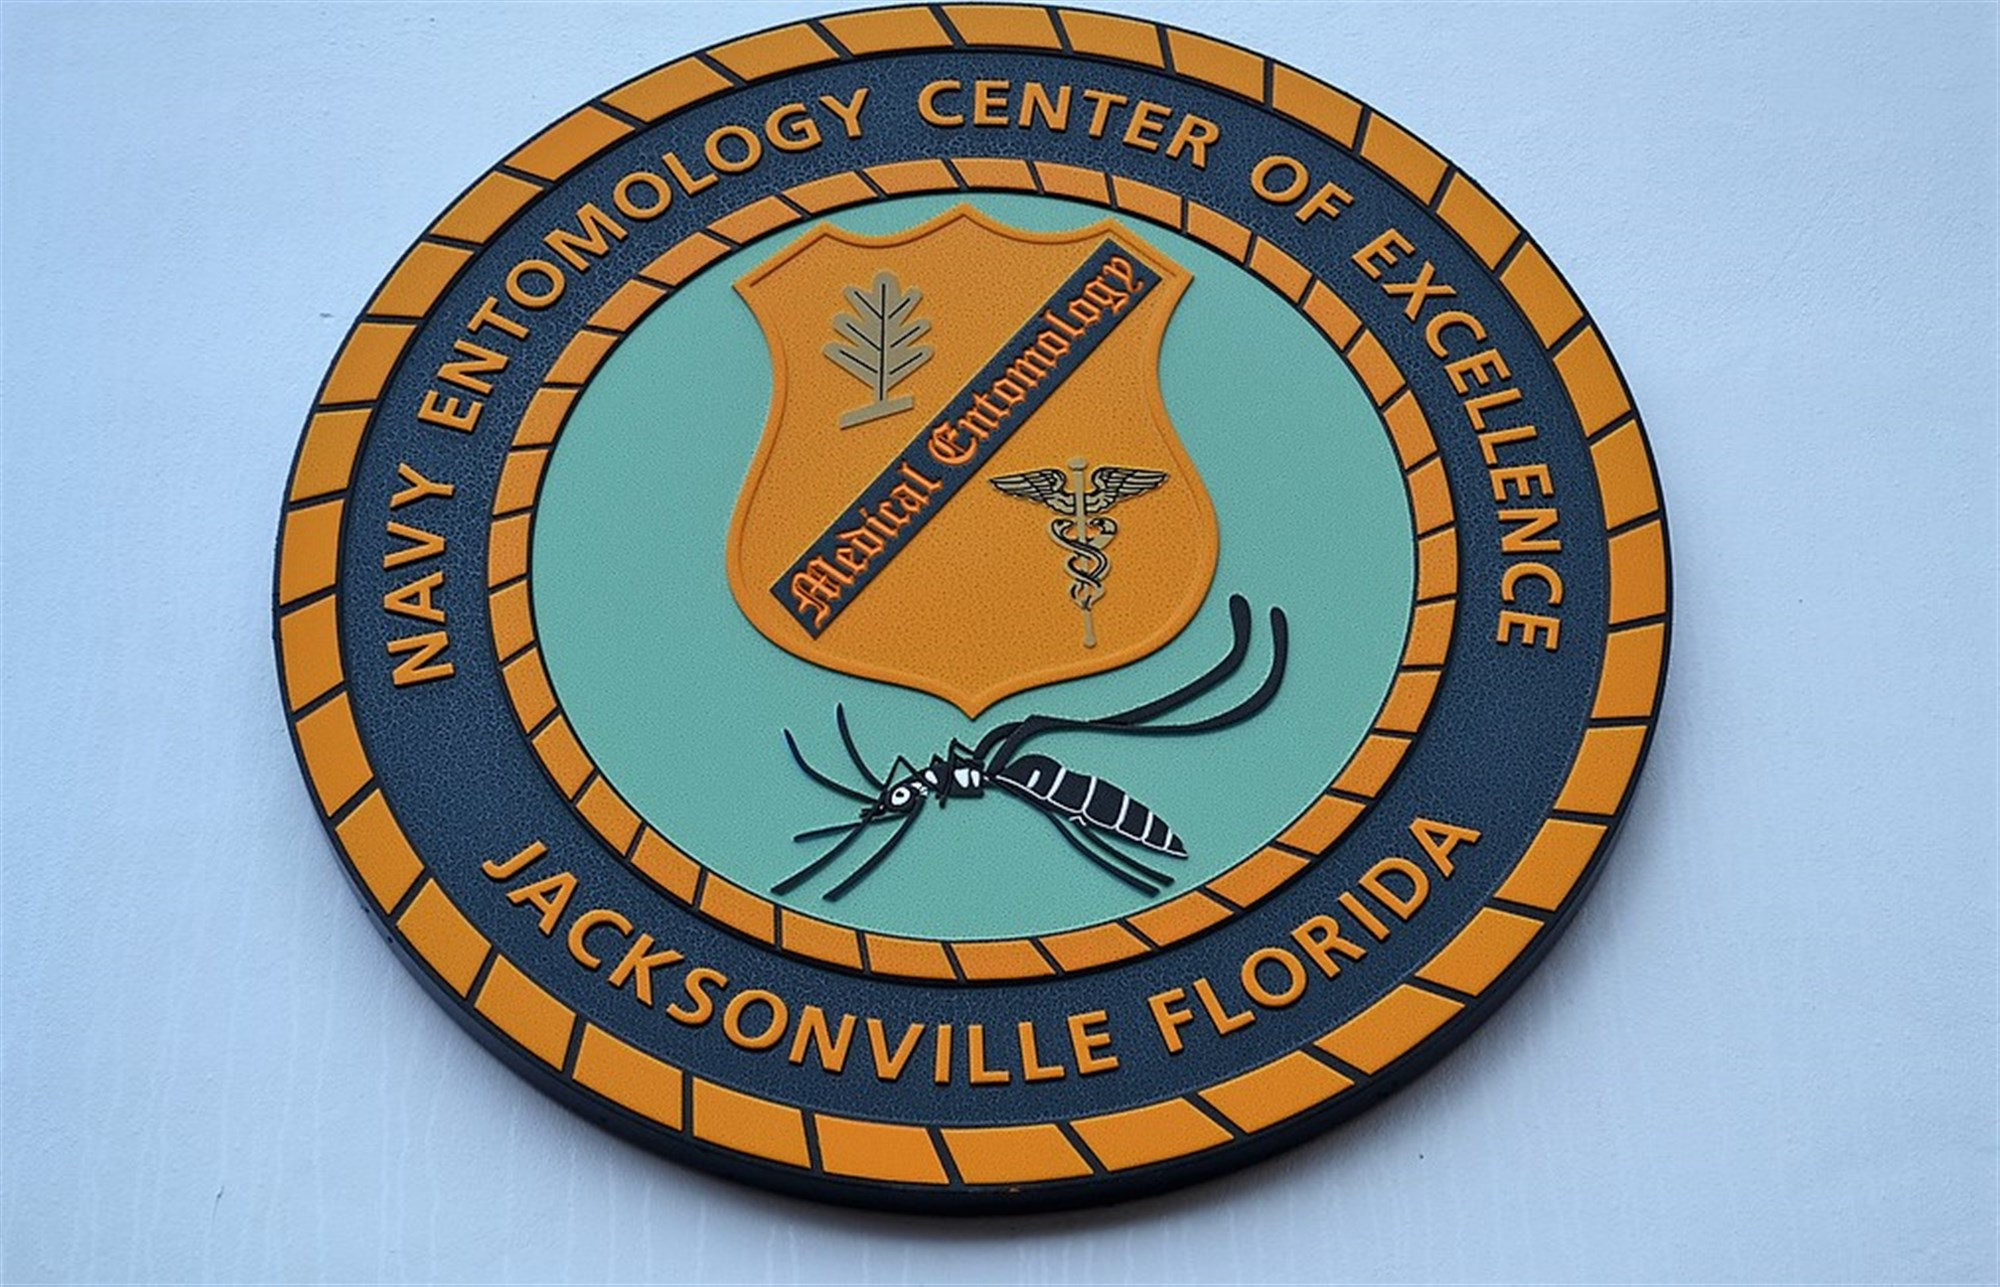 Seal of the U.S. Navy Entomology Center of Excellence